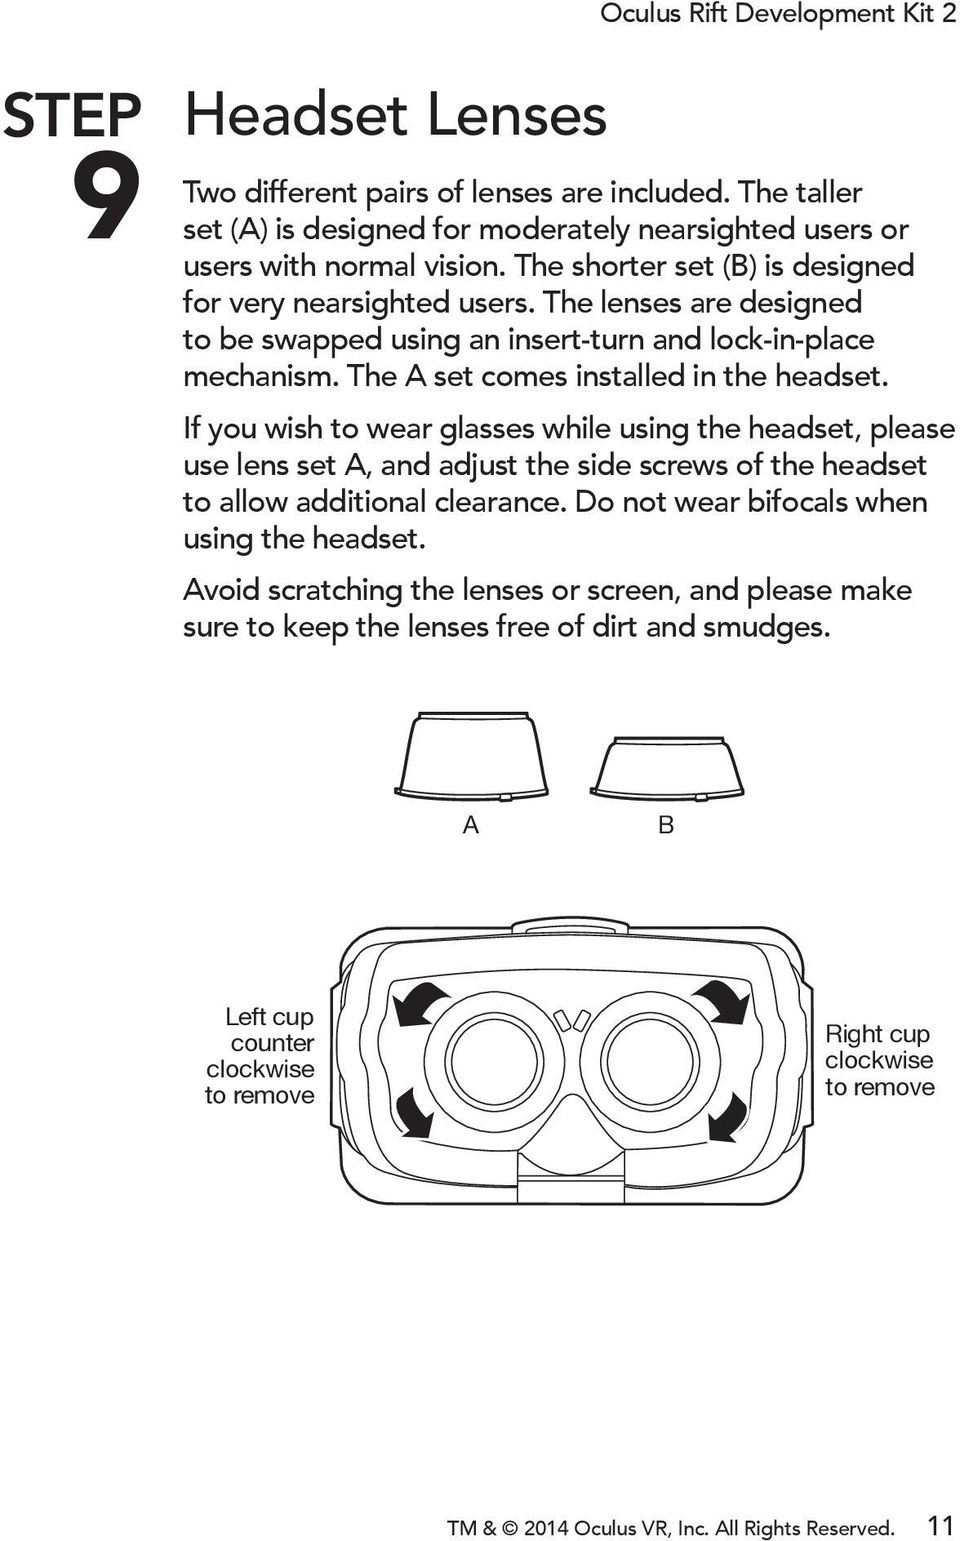 If you wish to wear glasses while using the headset, please use lens set A, and adjust the side screws of the headset to allow additional clearance.